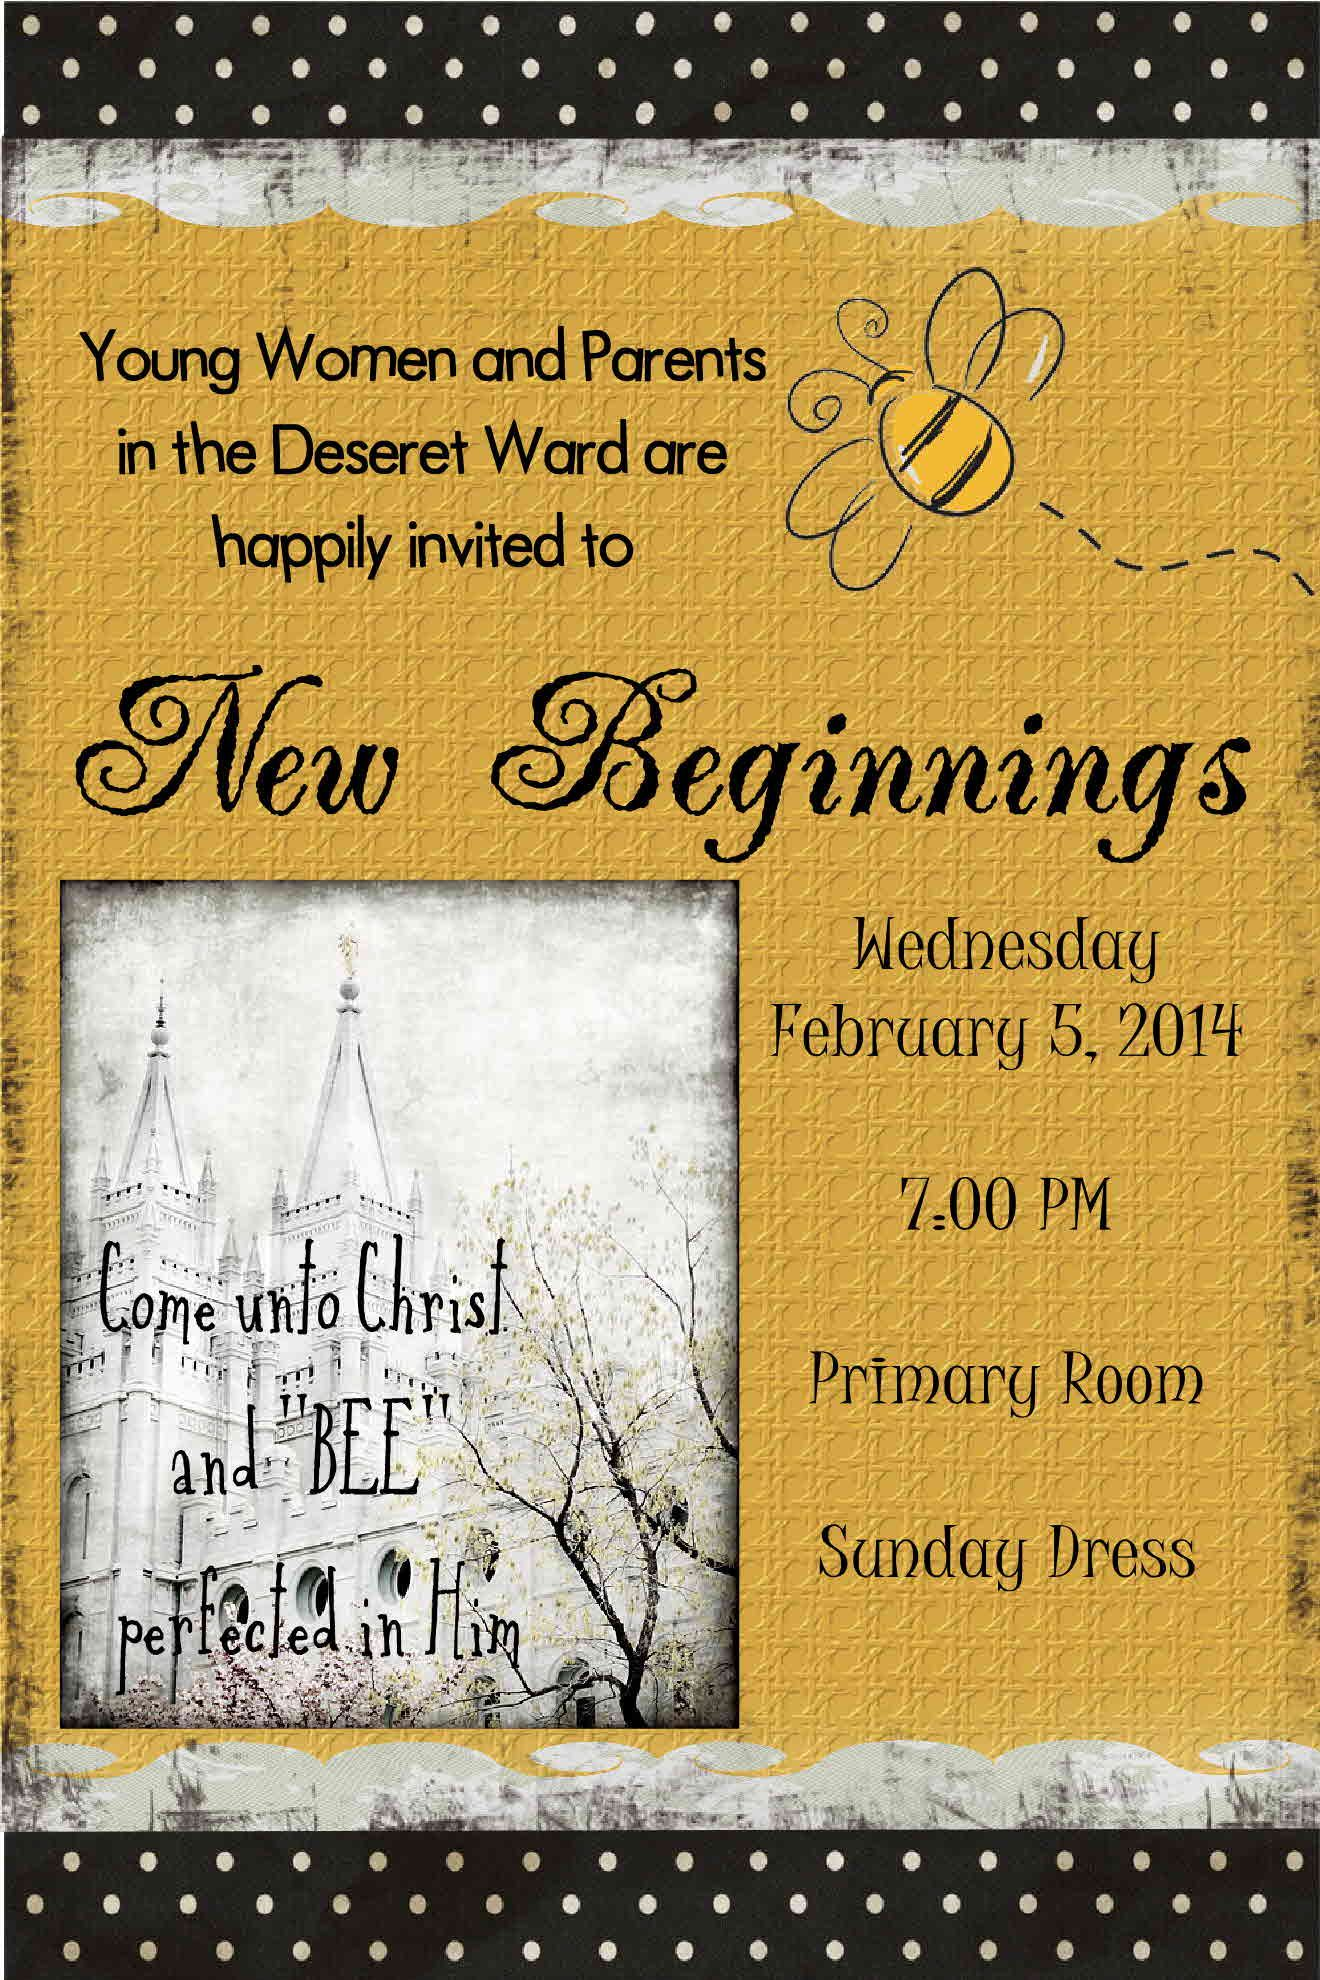 17 Best Ideas About New Beginnings On Pinterest: YW New Beginnings Invite Come Unto Christ And BEE